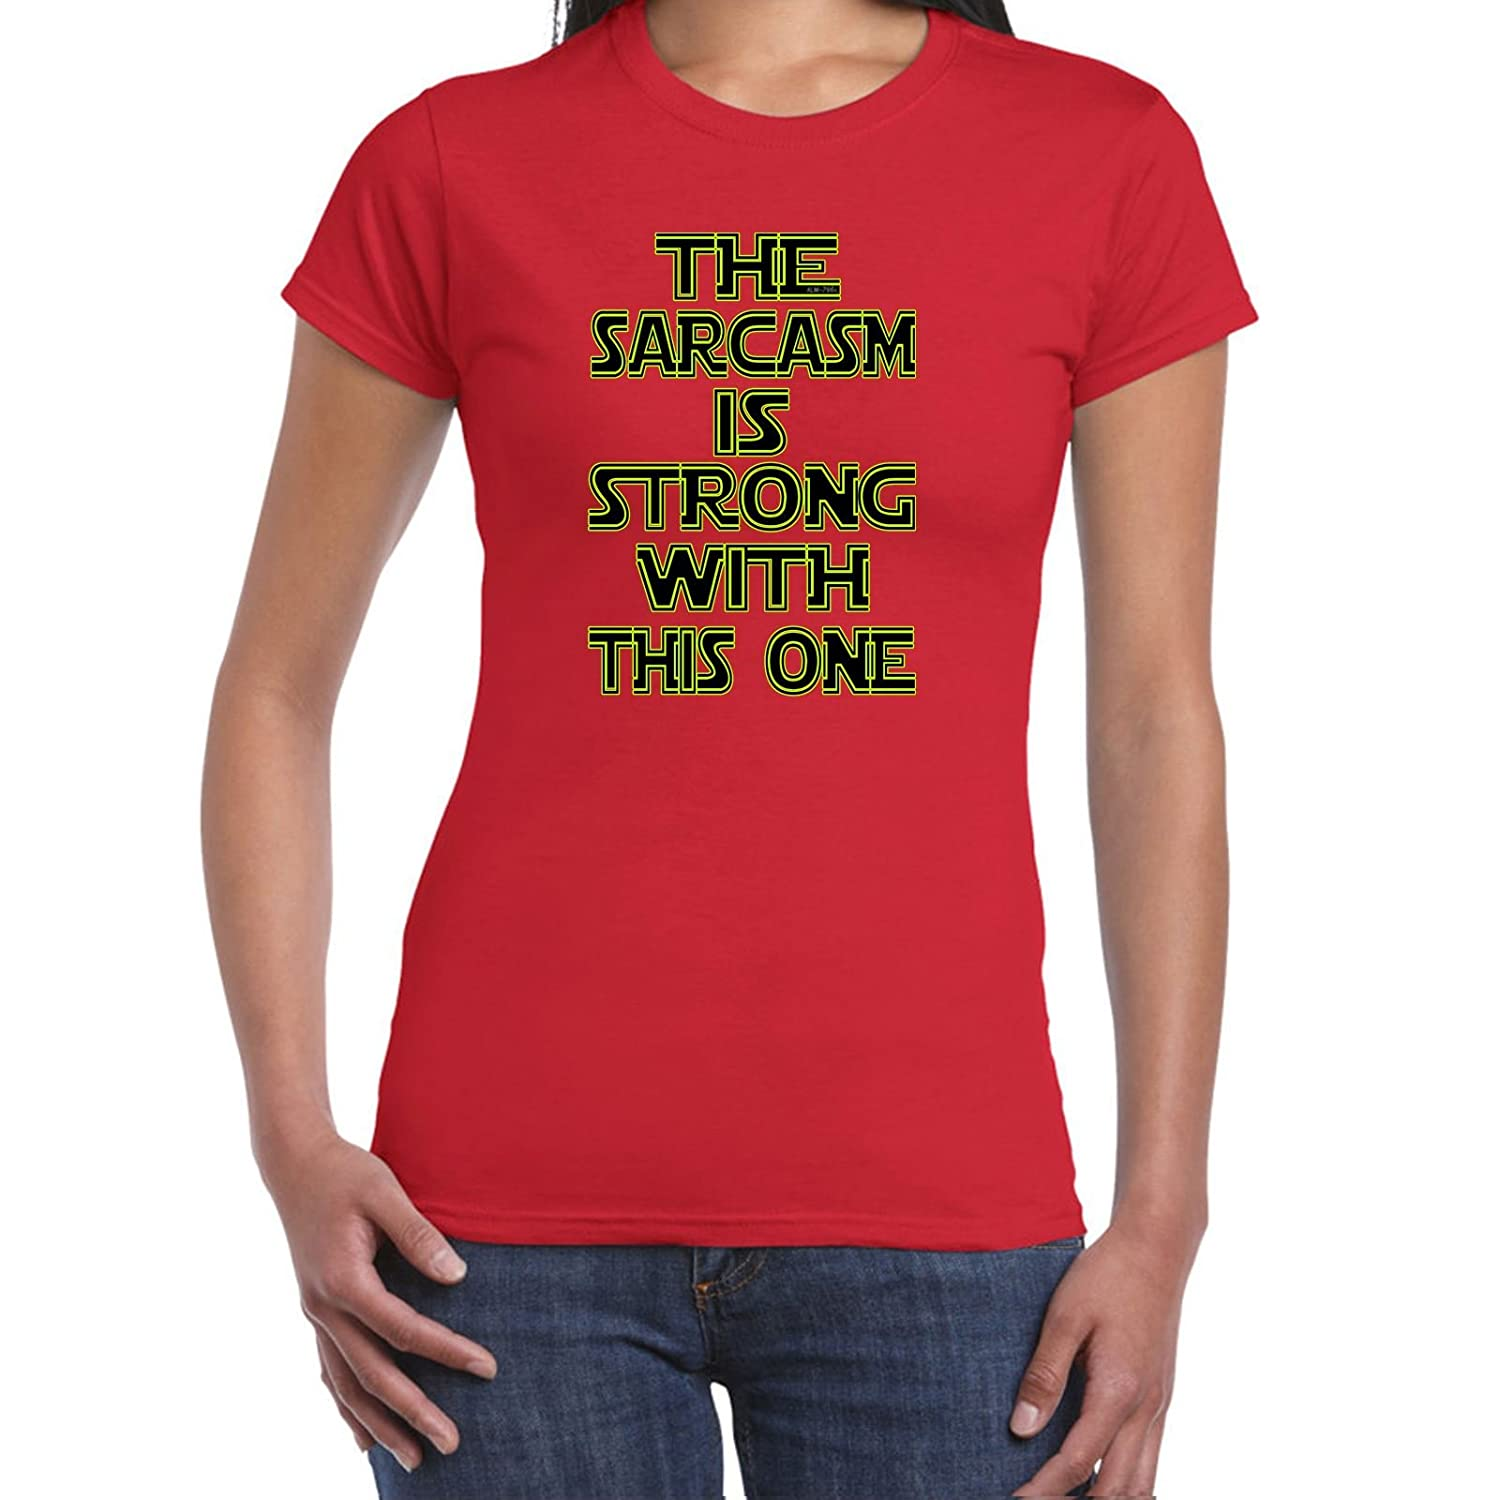 Womens Funny T Shirts-Sarcasm is Strong Star Wars Inspired-tshirt-Funny Gift ALM-786t